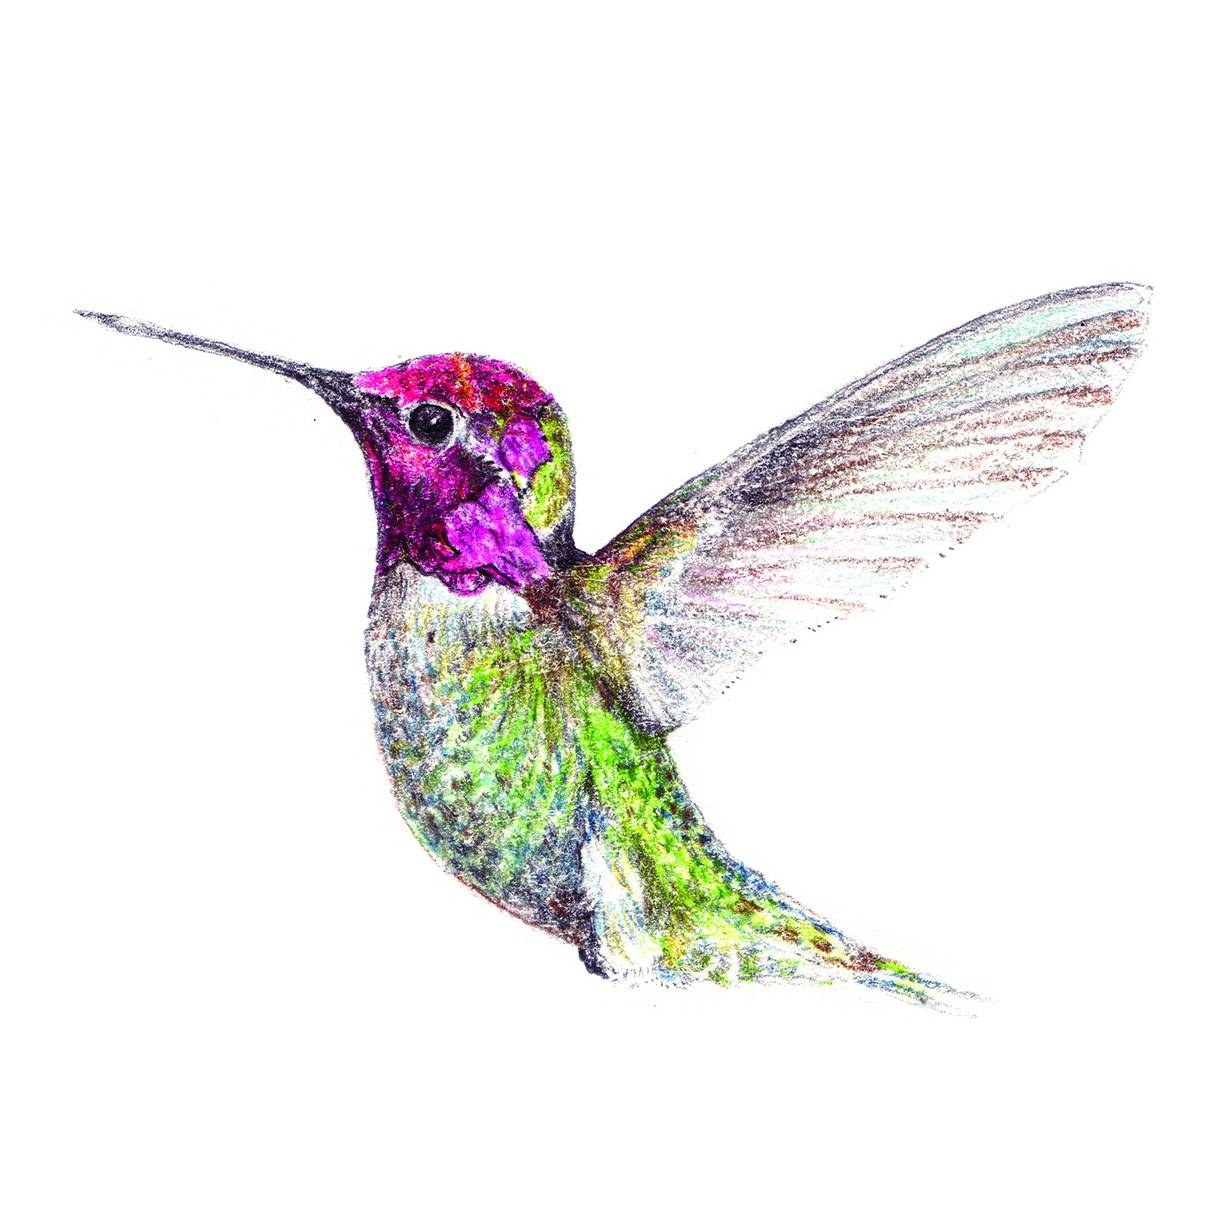 1228x1220 Hummingbird Color Draw Hummingbird Drawings Hummingbird Drawing